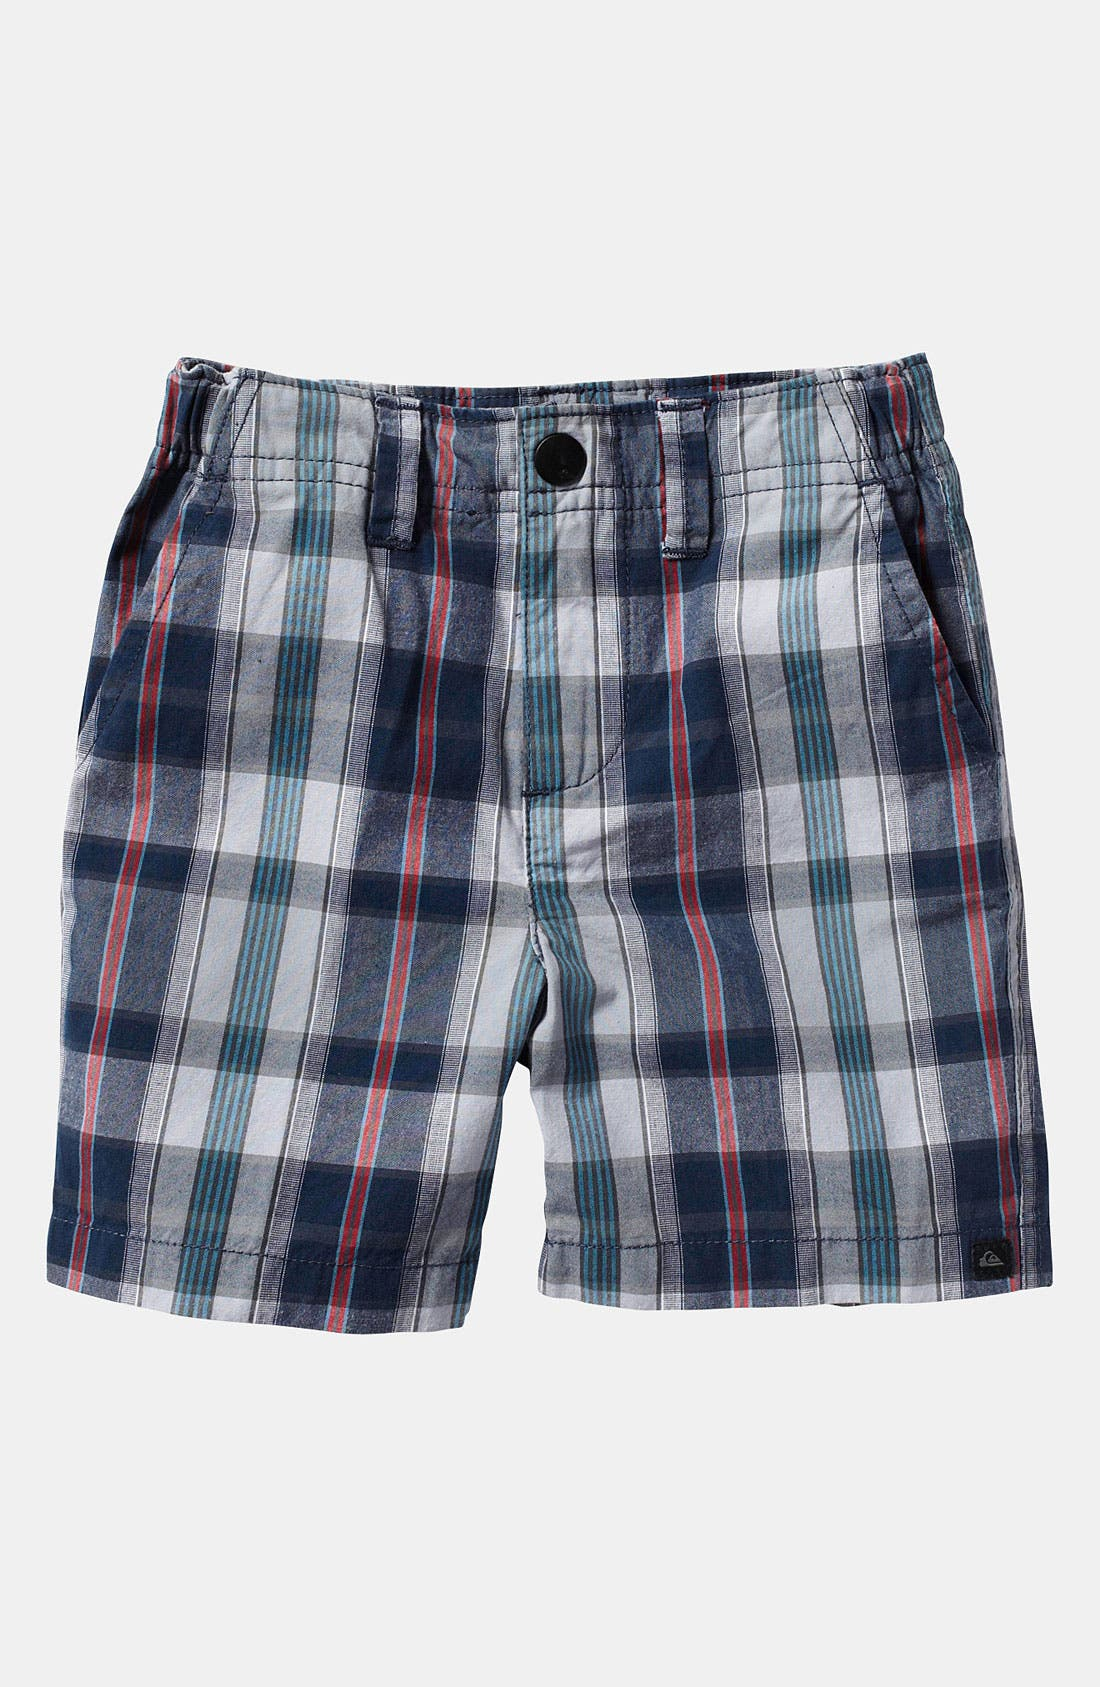 Alternate Image 1 Selected - Quiksilver 'Bookend' Plaid Shorts (Toddler)